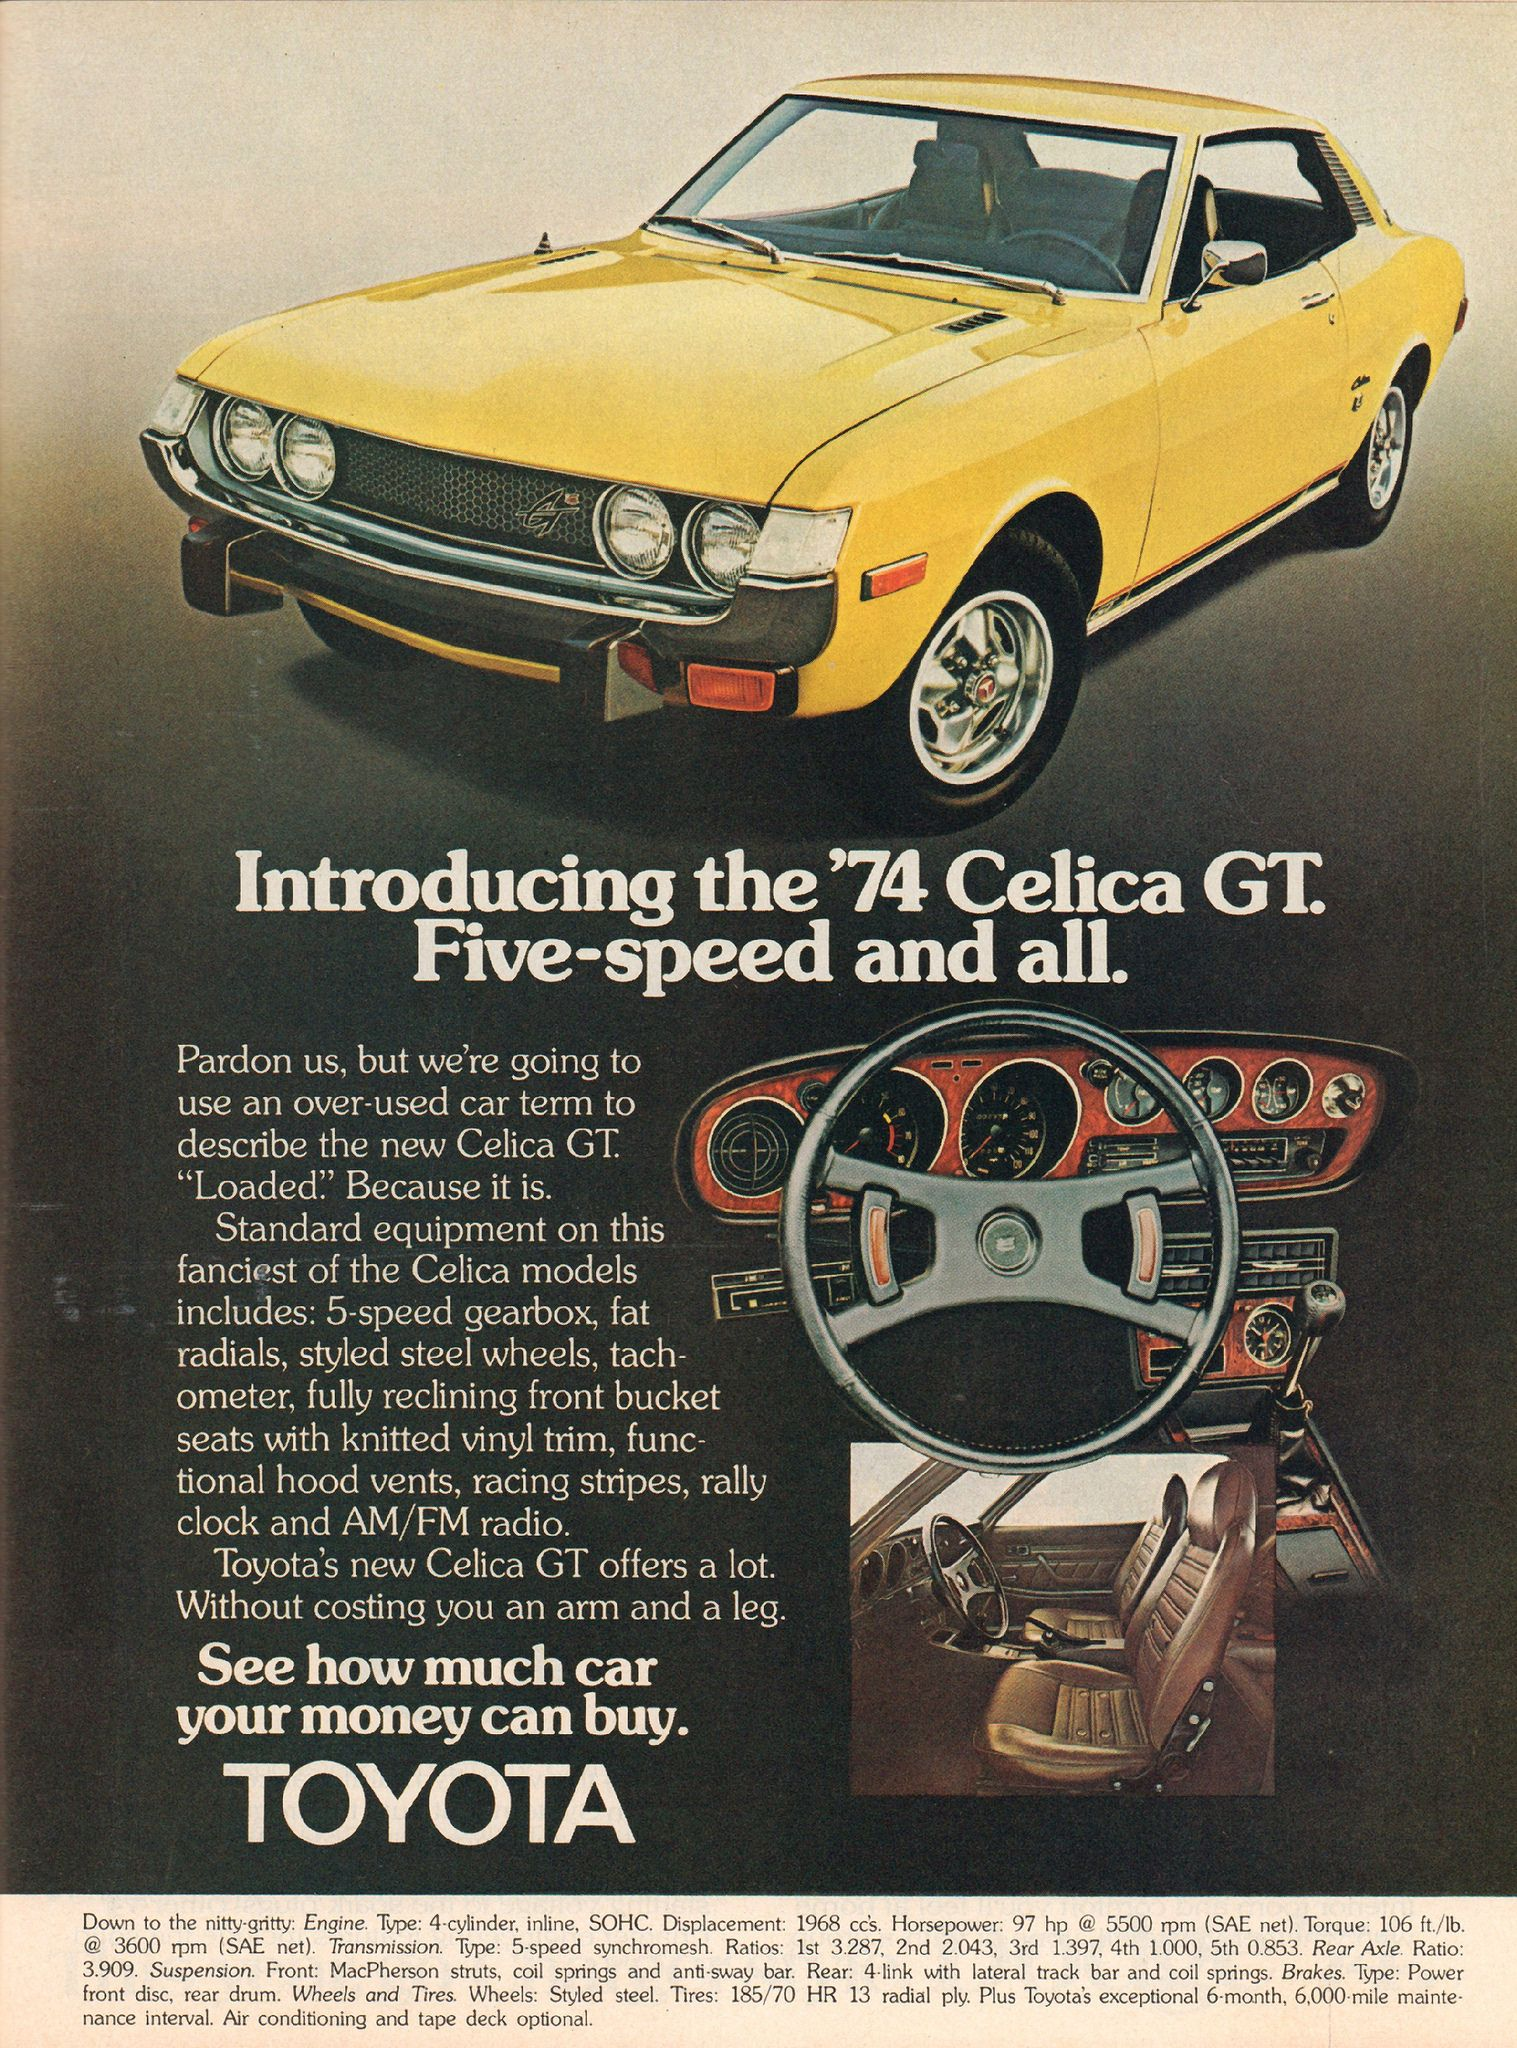 1974 Toyota Celica Gt Advertisement Motor Trend November 1973 Liftback Ford Bad 1700 Hp Km H Guinness World Records